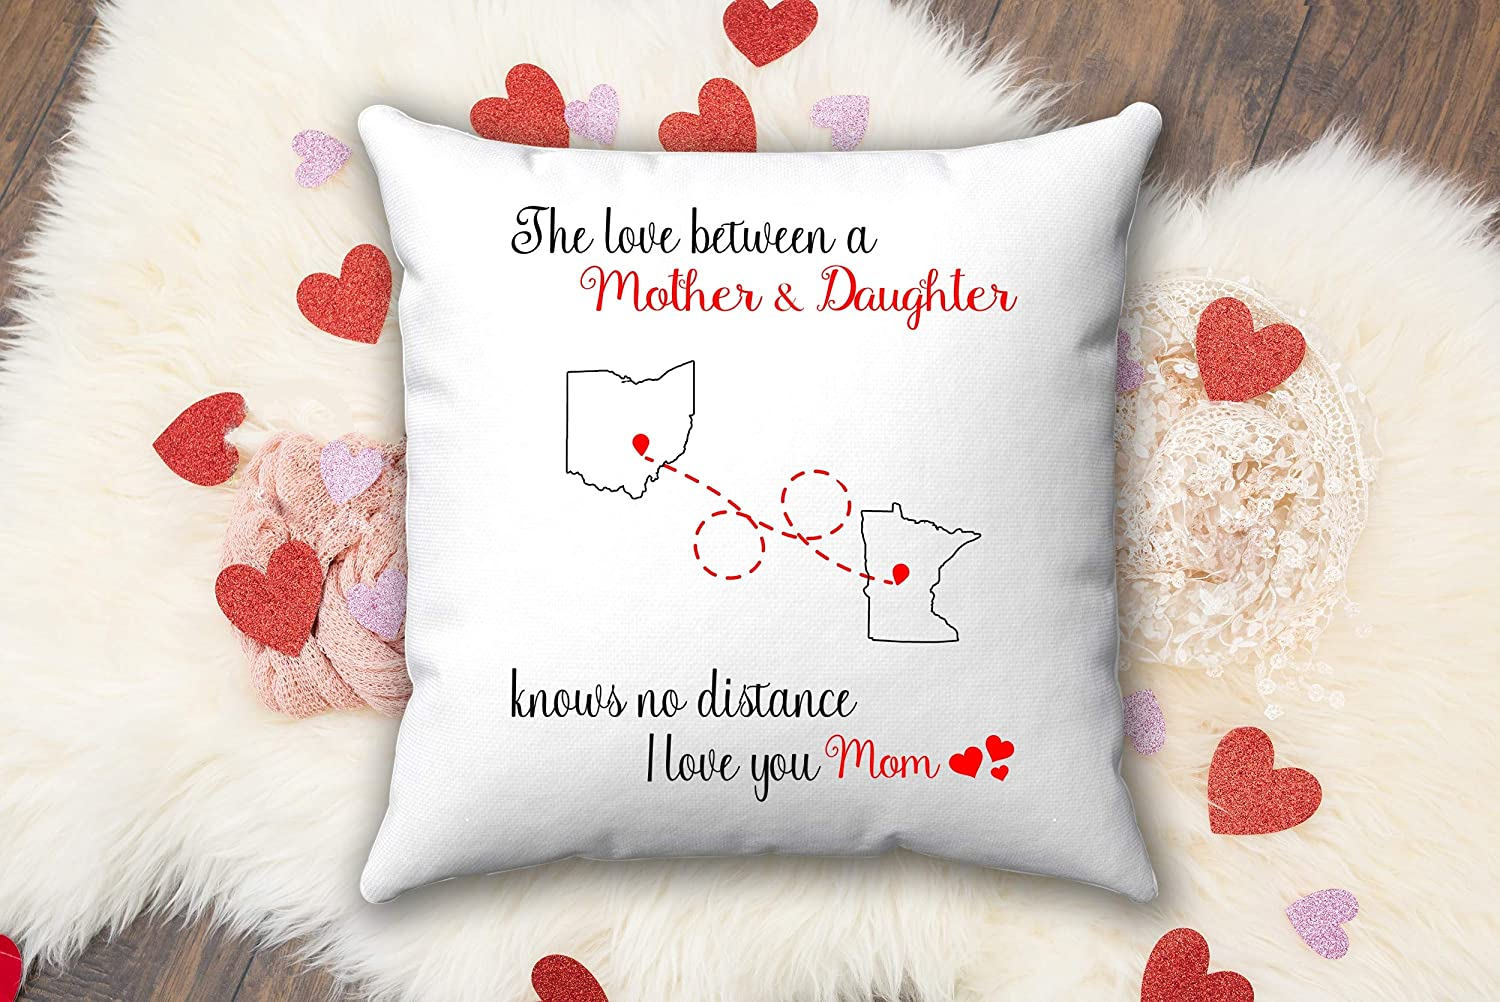 Mother and Daughter Gifts Super beauty product restock quality top Ohio The Love Max 63% OFF Between Minnesota State